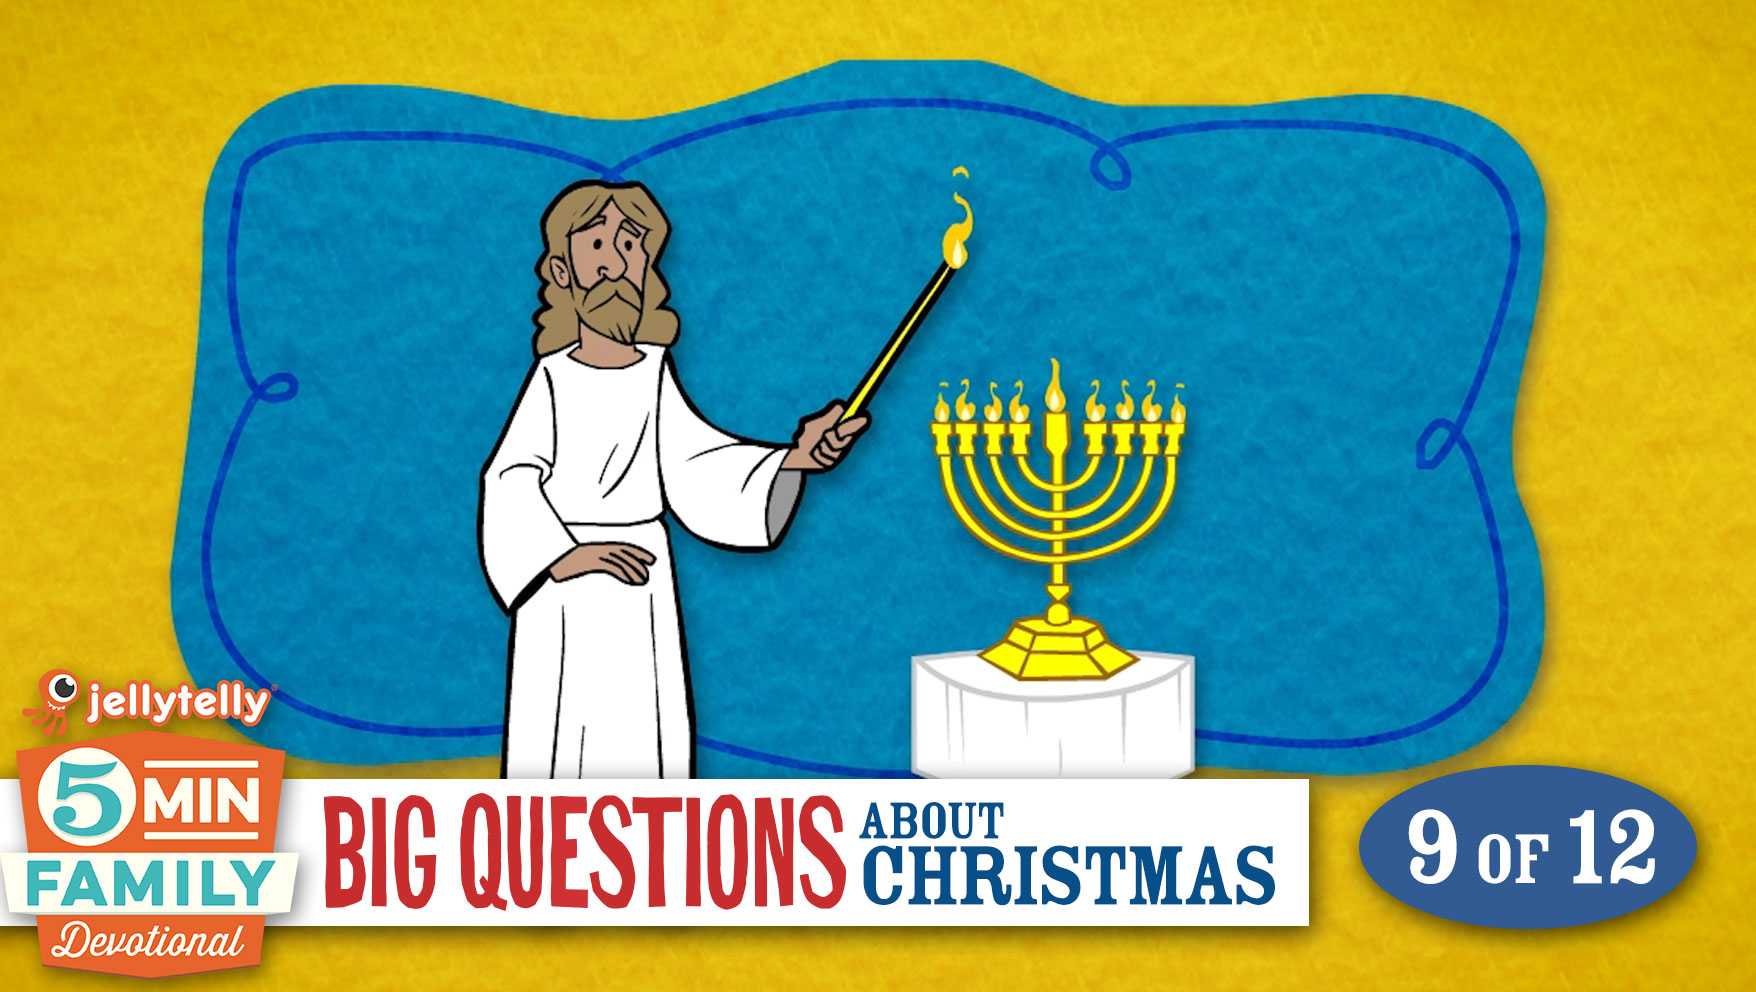 What is Hanukkah? - Christmas 5 Minute Family Devotional